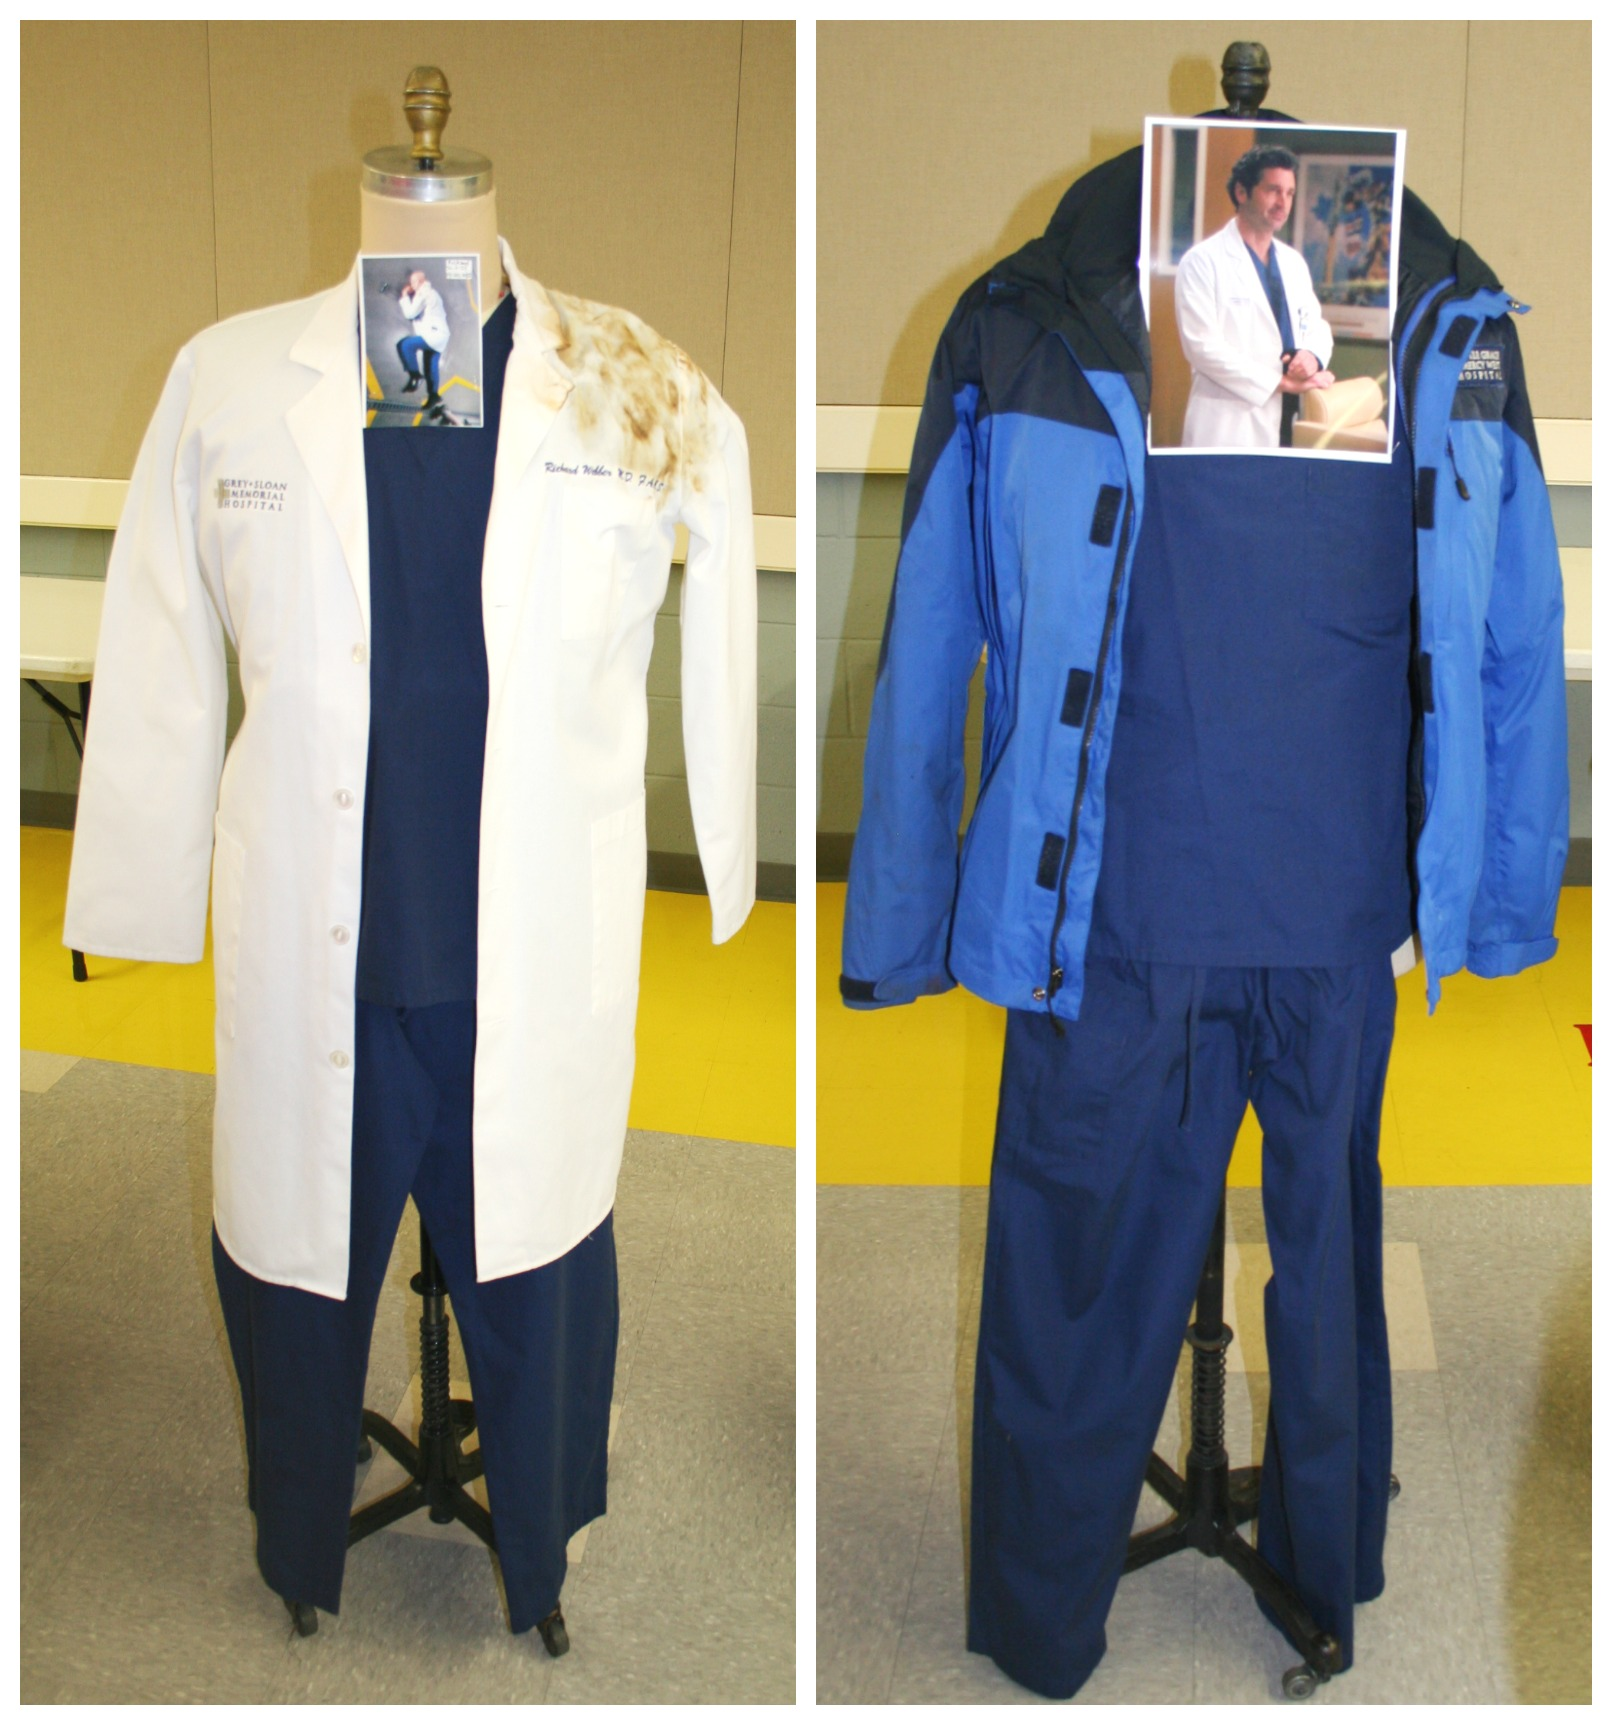 Grey's Anatomy McDreamy Clothes #ABCTVEvent